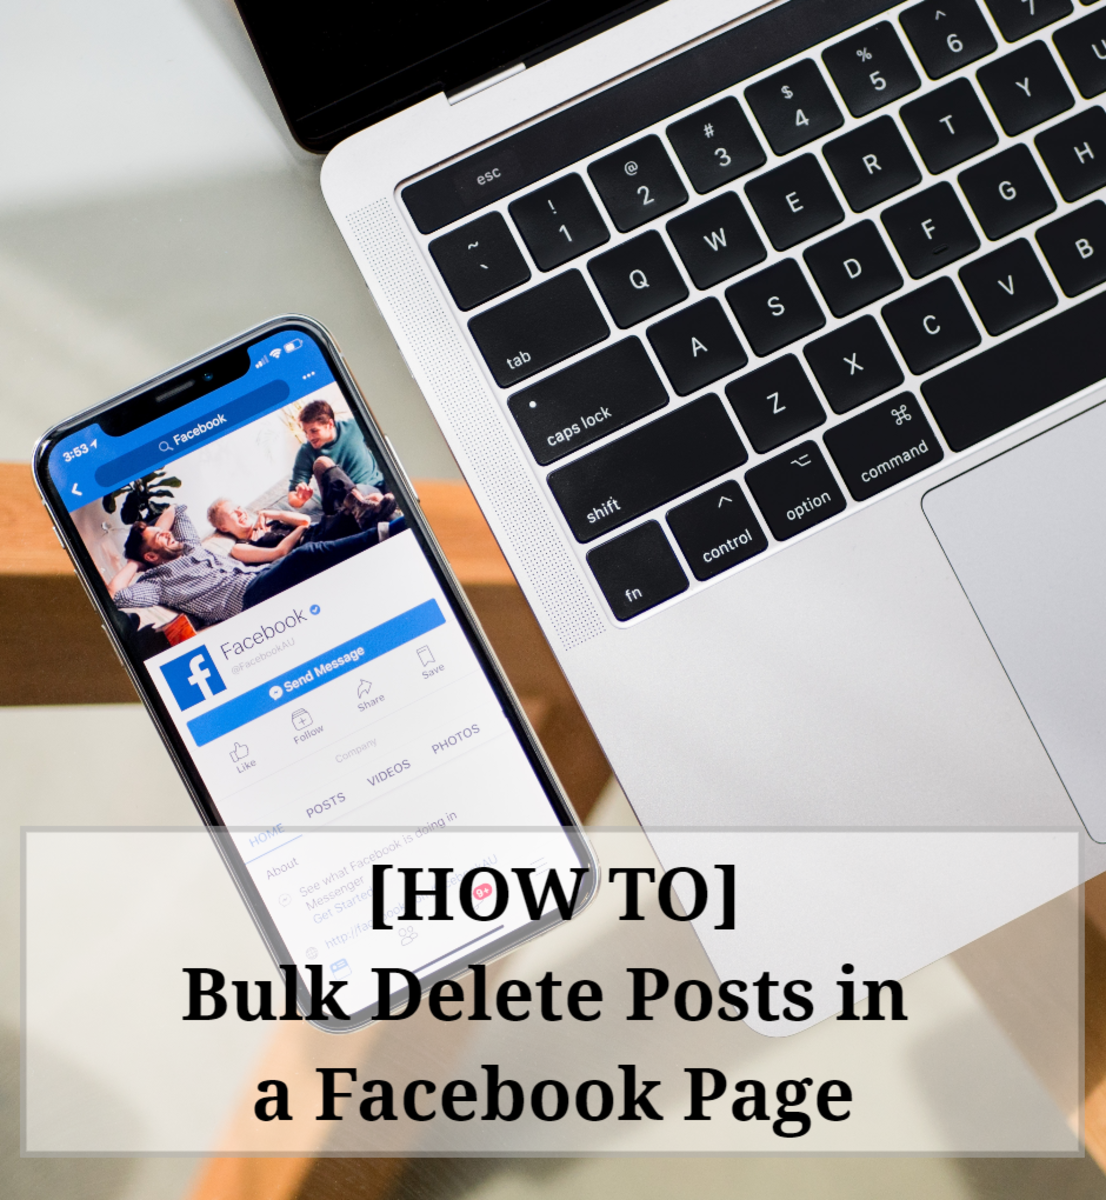 How to Bulk Delete Posts in a Facebook Page